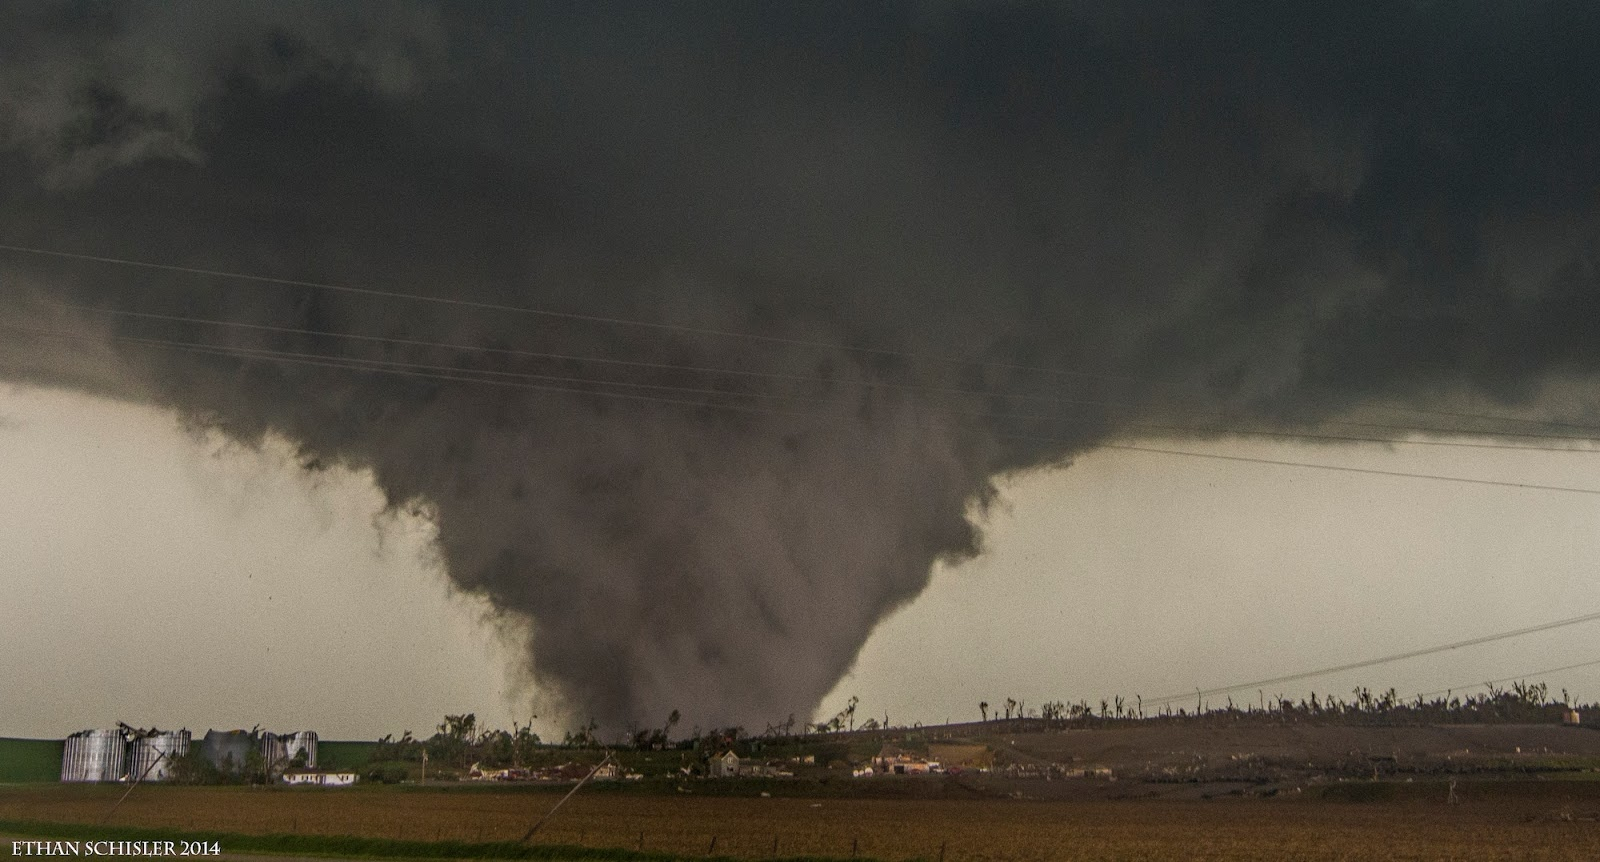 Best photos of tornadoes in 2014